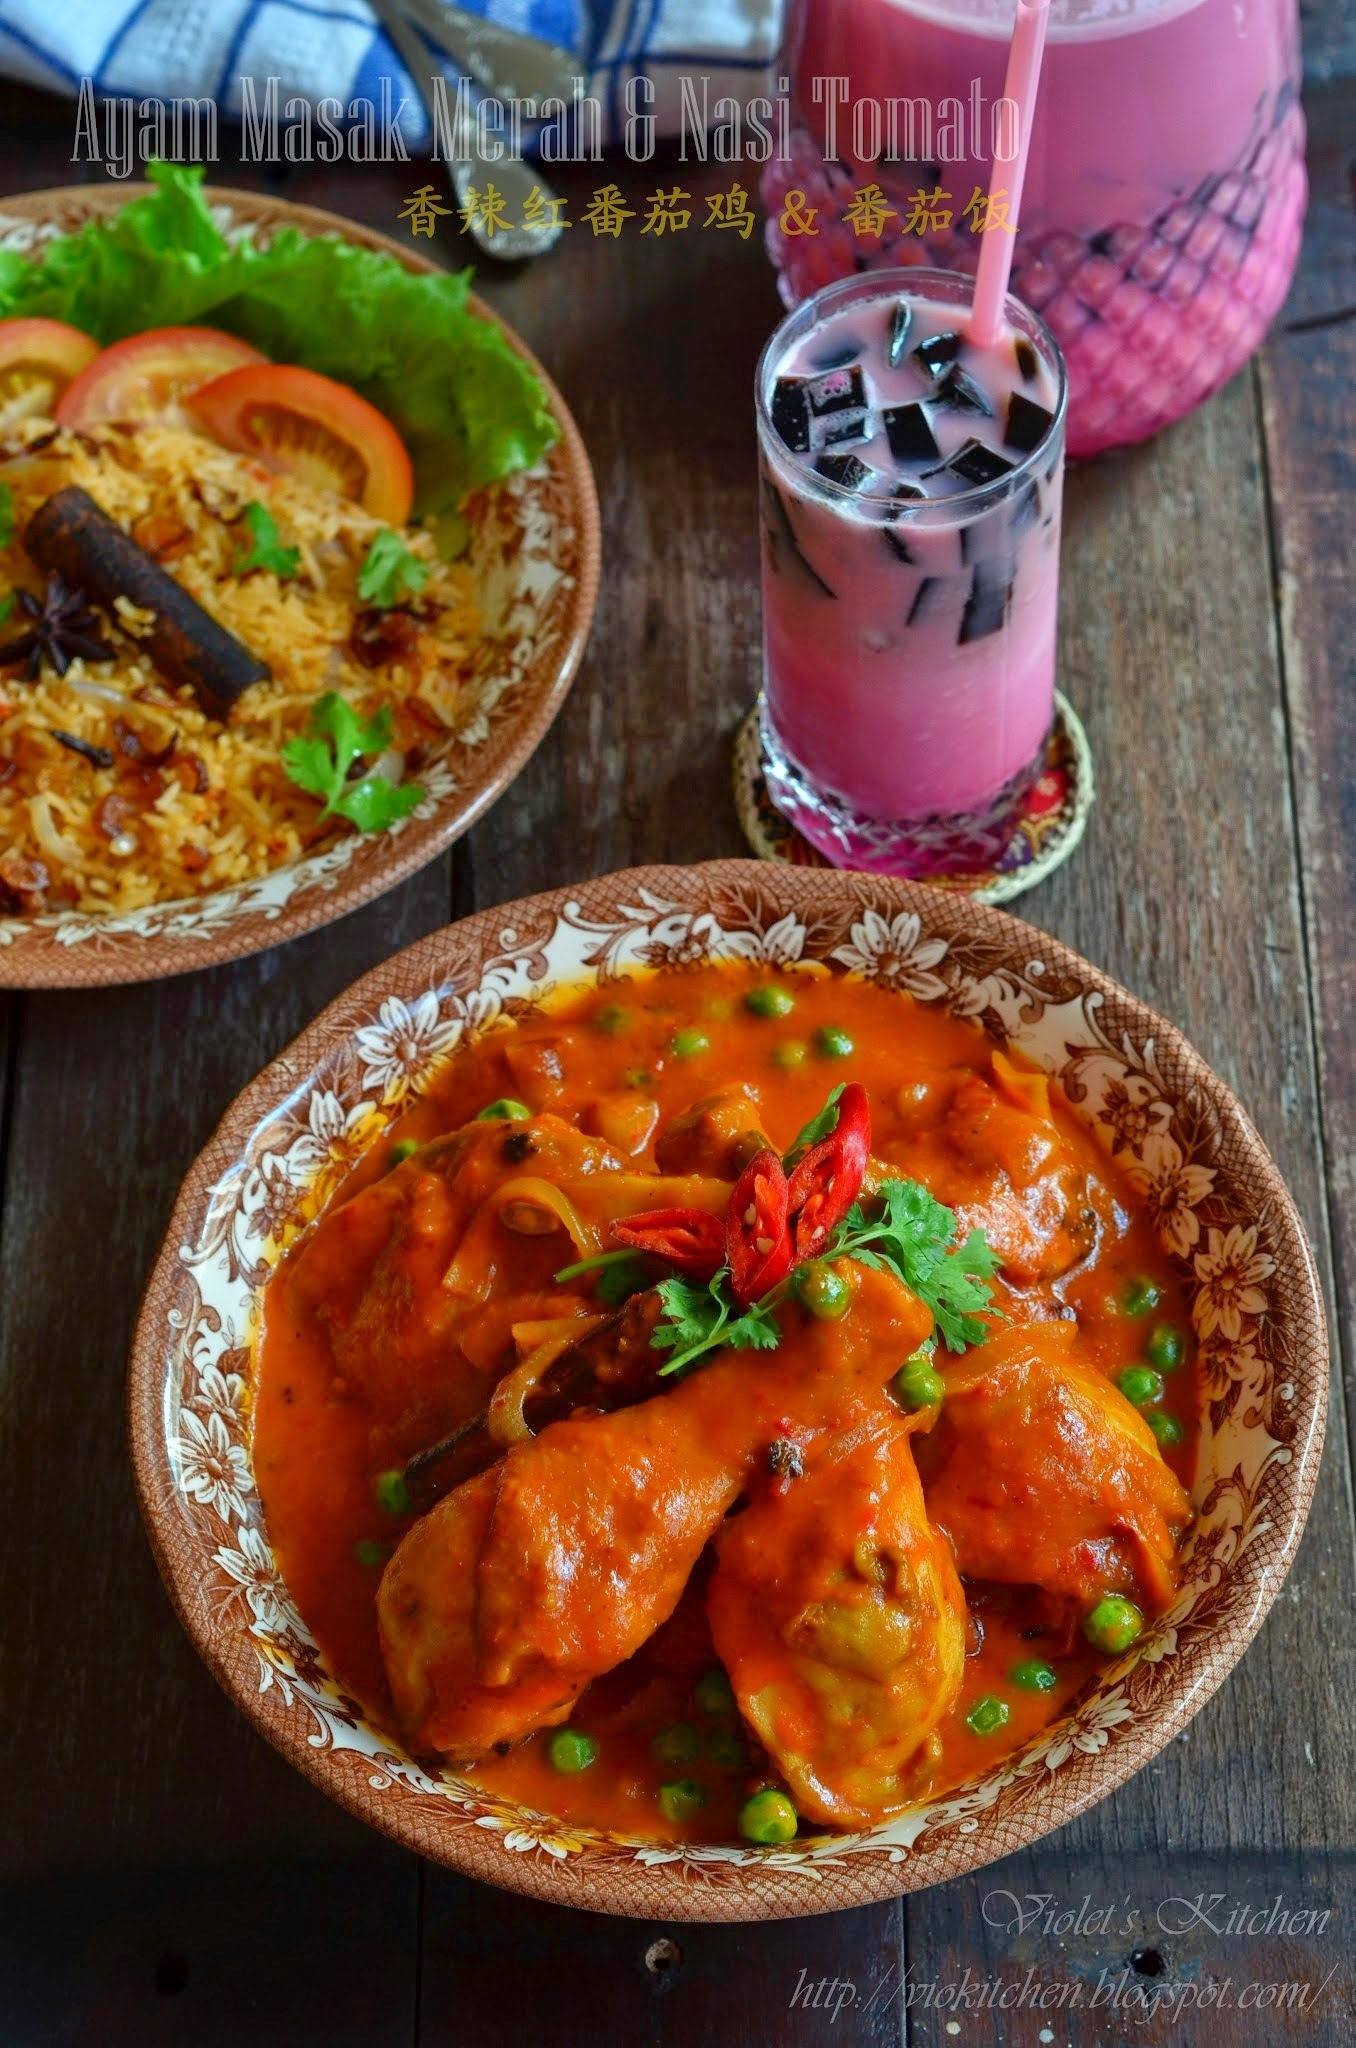 香辣红番茄鸡 & 番茄饭 Ayam Masak Merah & Nasi Tomato | Malay Red Cooked Chicken & Tomato Rice